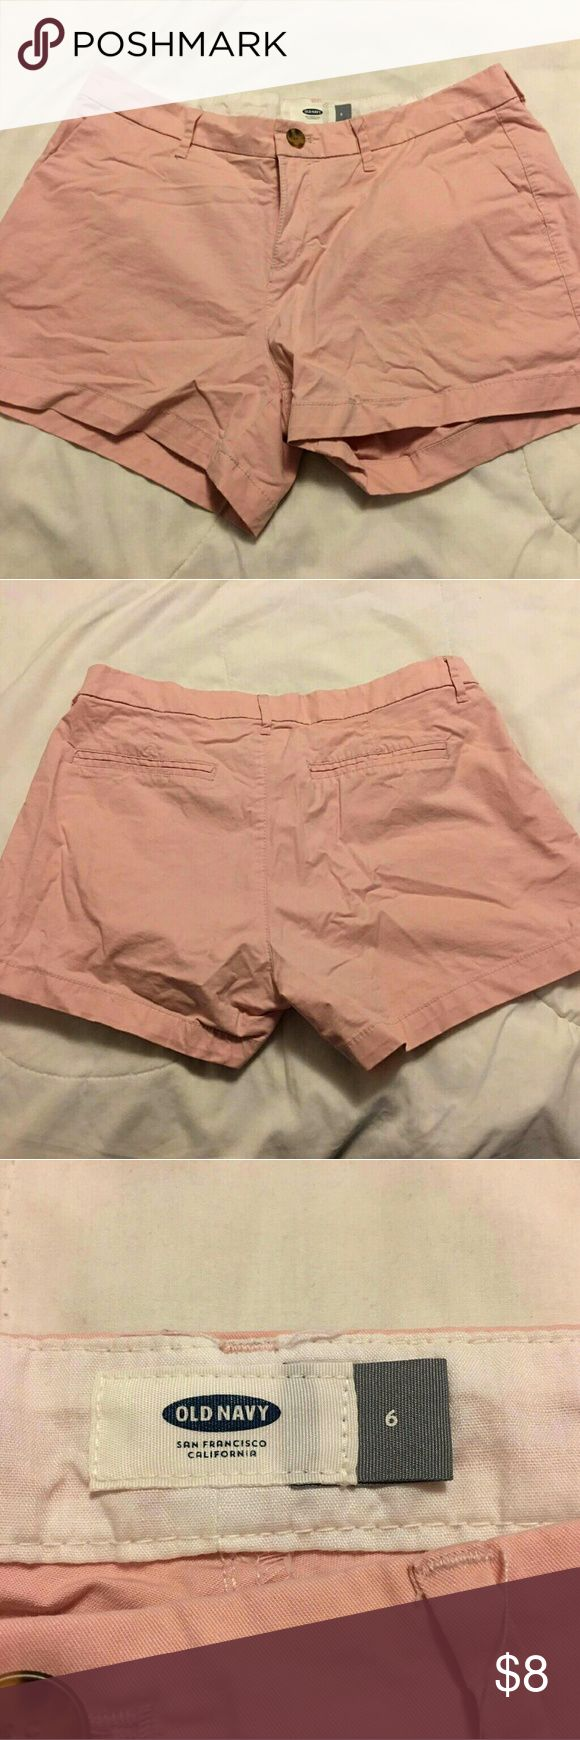 NWT Old Navy Peach Shorts NWT   Old Navy women peach shorts  Size 6 Old Navy Shorts